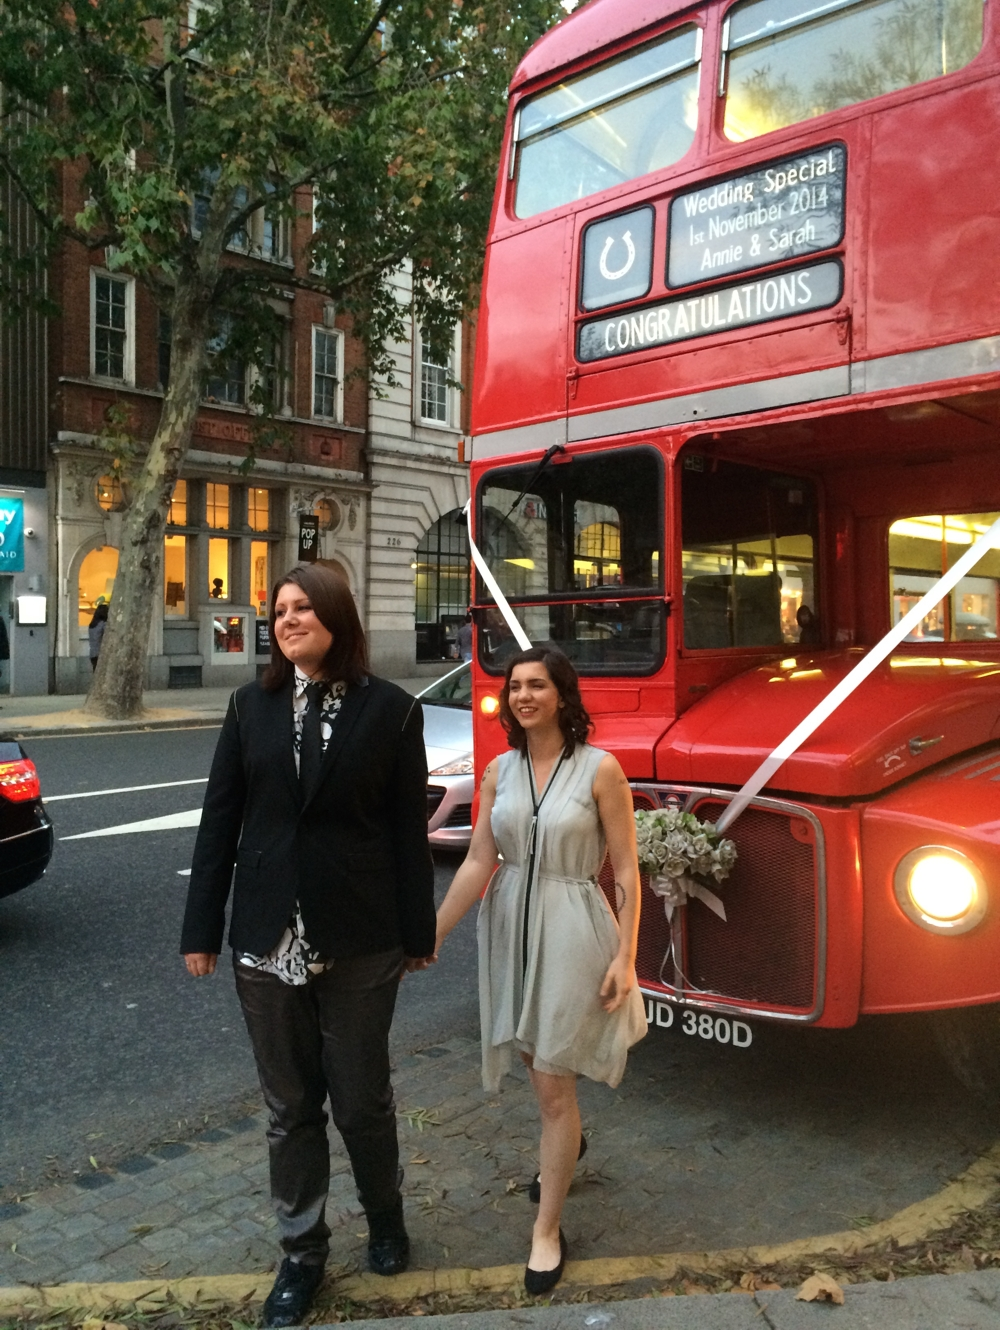 Sarah and Annie standing in front of their wedding bus